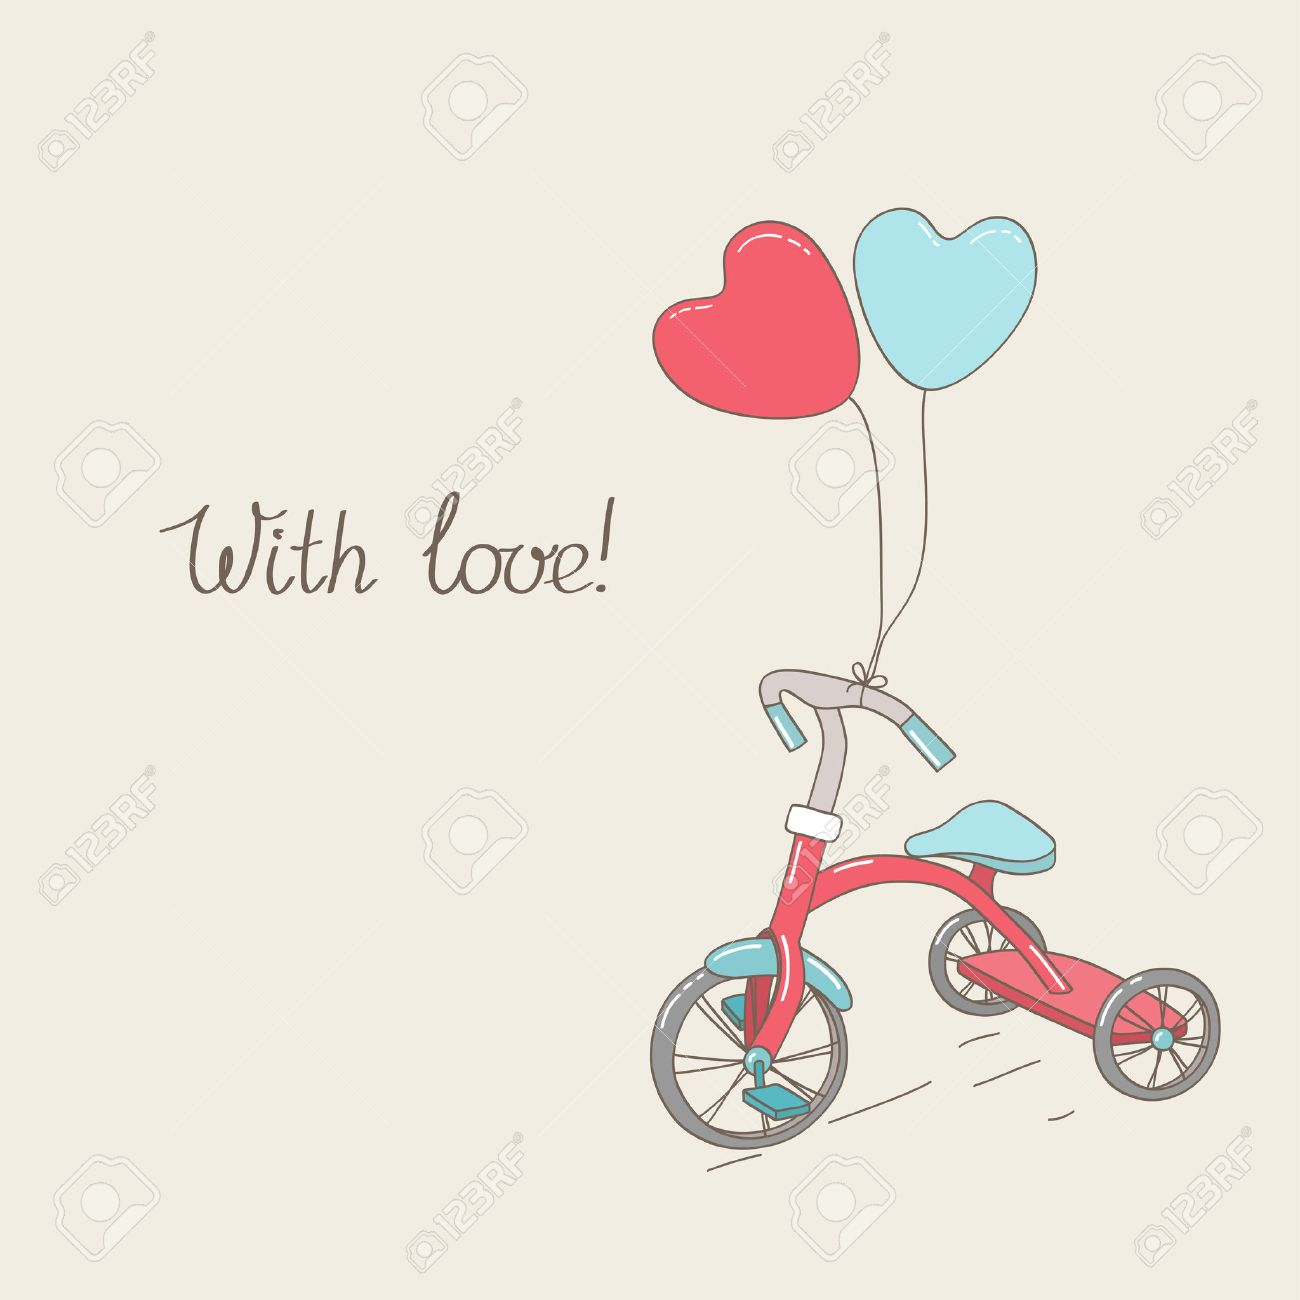 Tricycle and two heart-shaped balloons  Vintage greetings card  Hand written text Stock Vector - 25327097